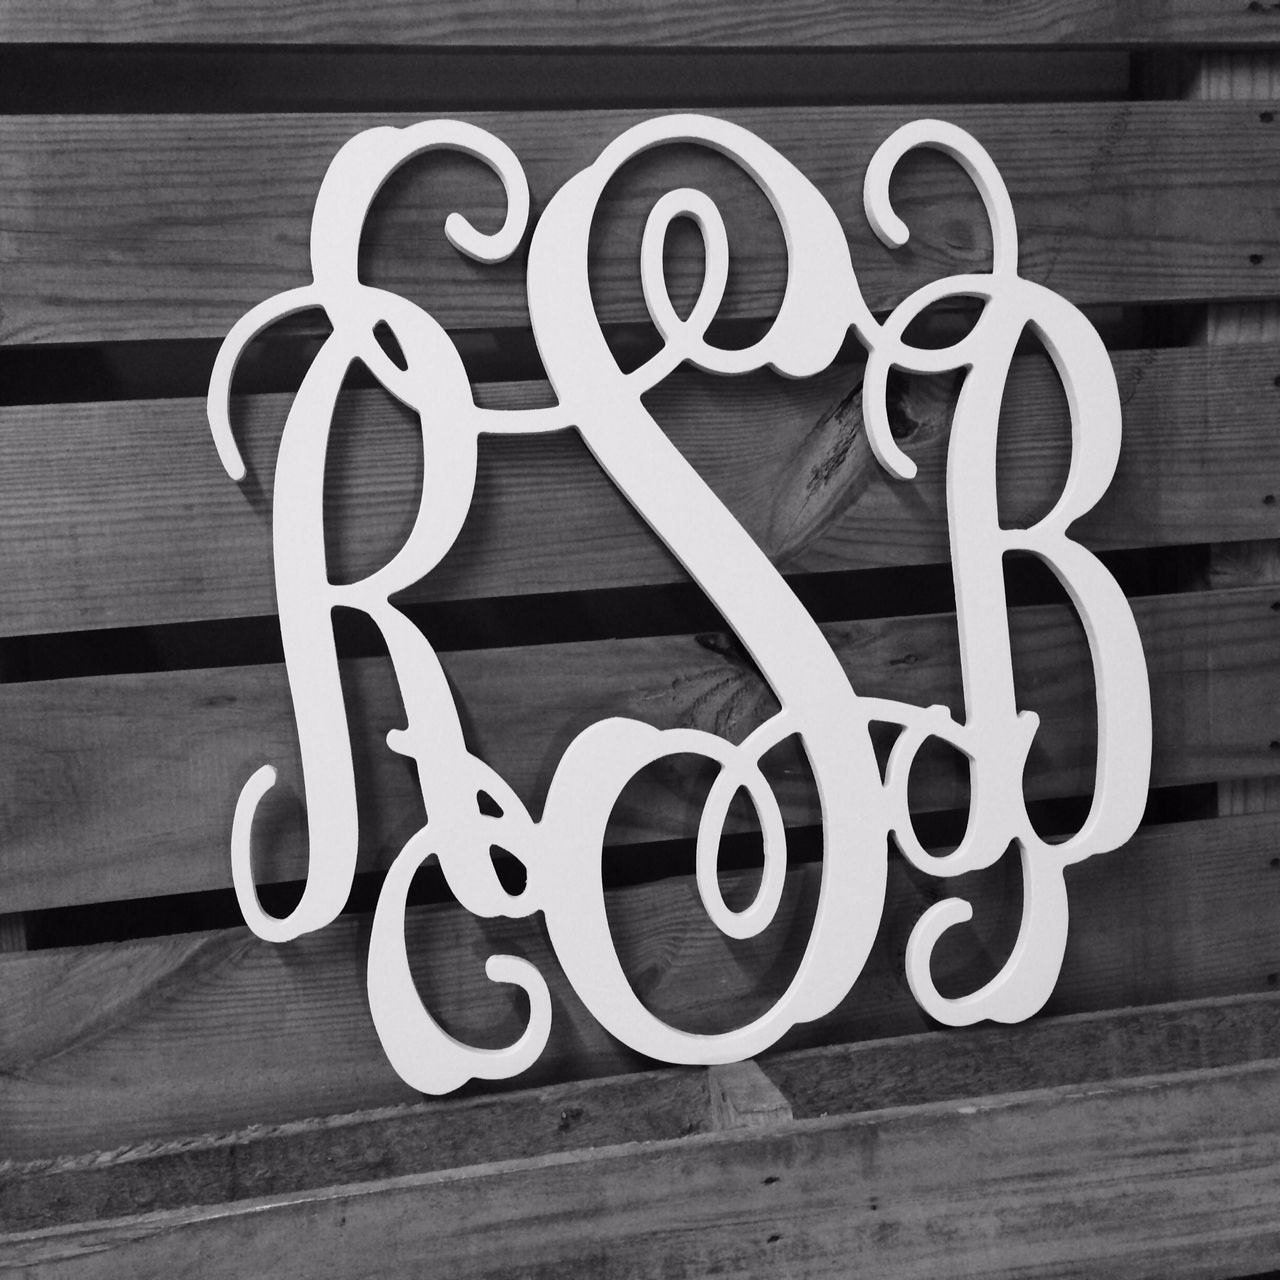 puff and pass cover letter - wooden monogram wall hanging home decor wall decor